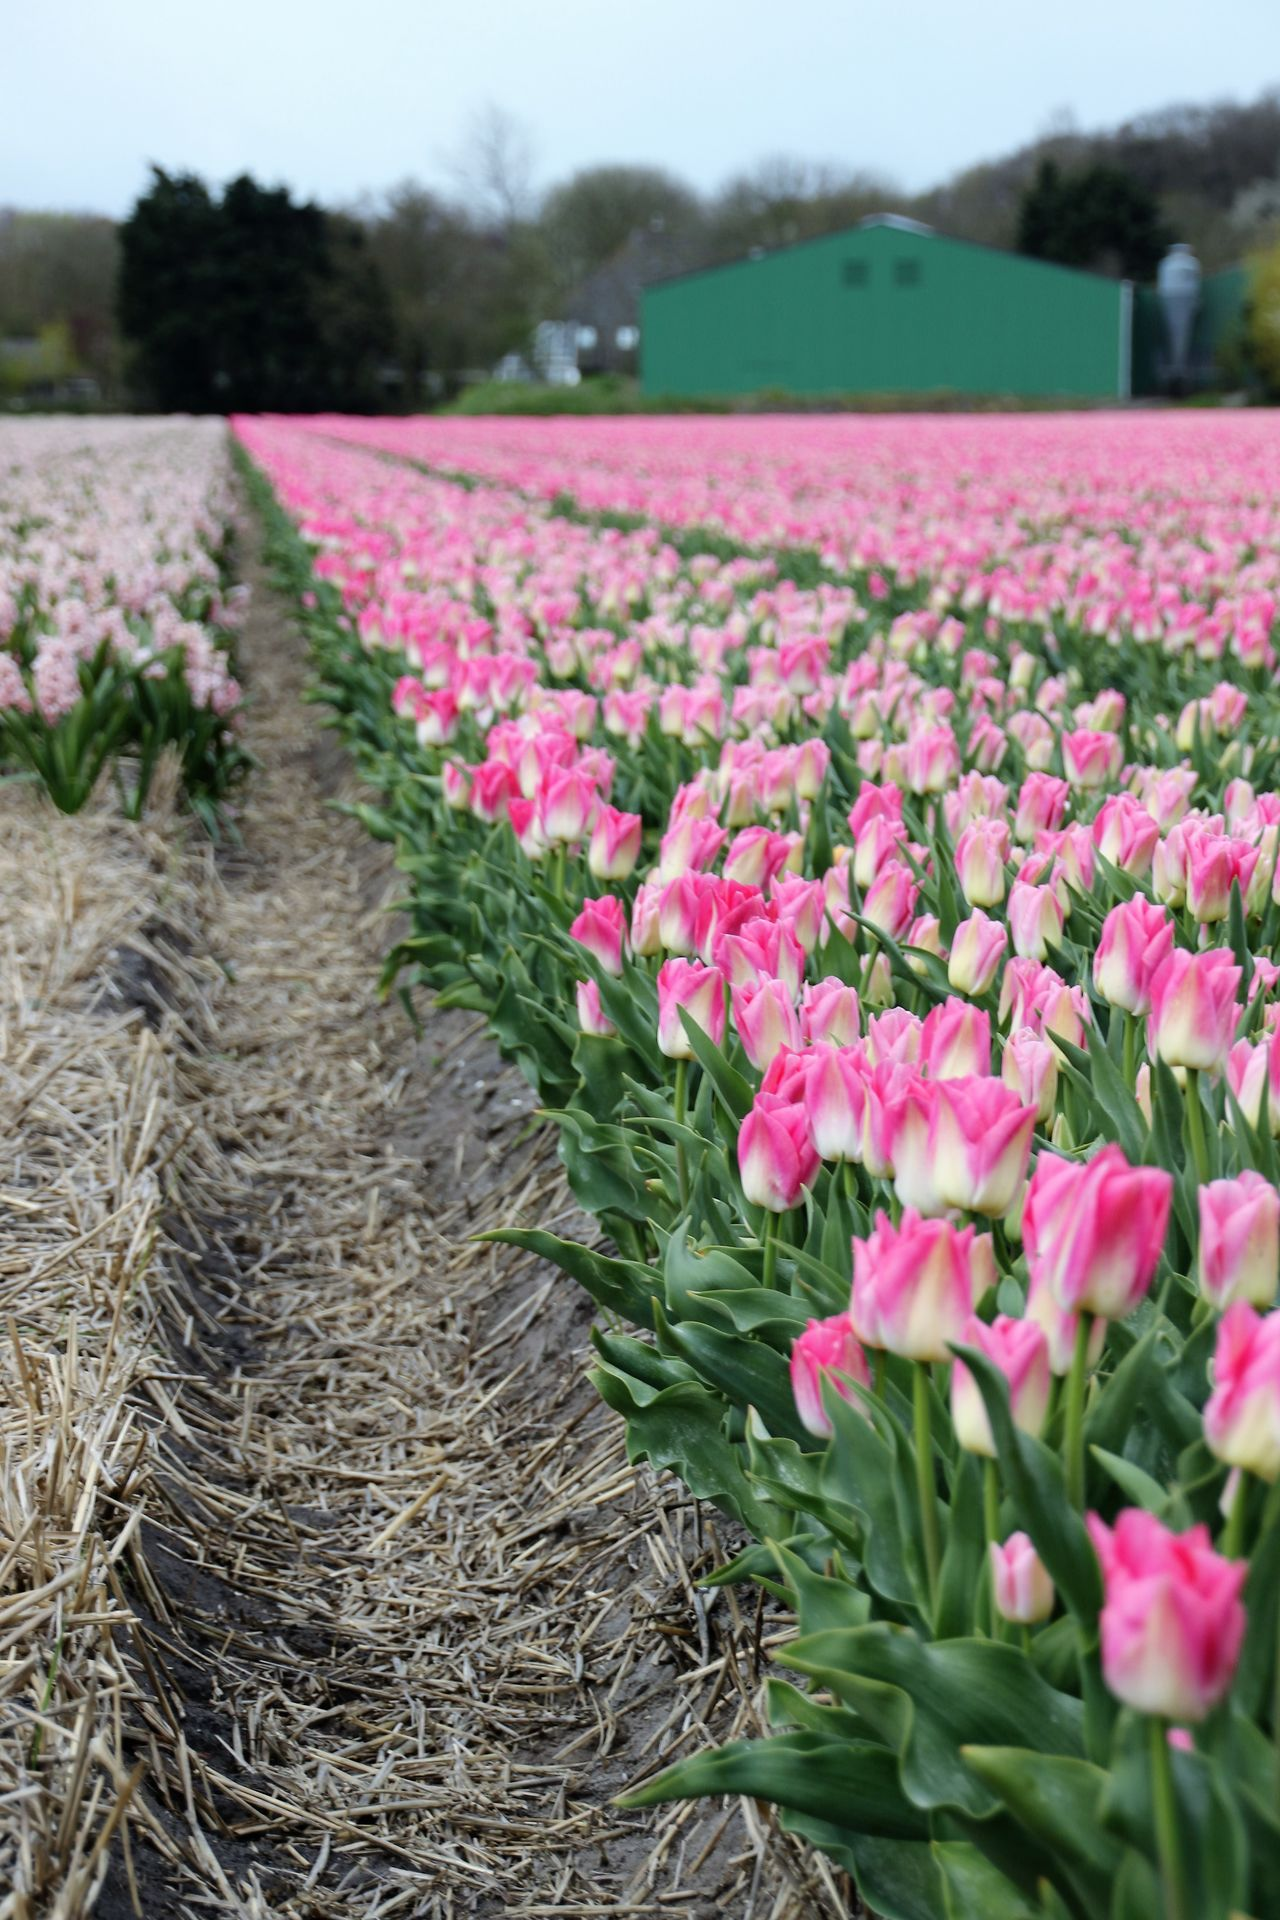 Agriculture Beauty In Nature Blossom Day Field Flower Flower Head Flowerbed Flowers Focus On Foreground Fragility Freshness Growth Landscape Nature No People Outdoors Petal Pink Color Plant Rural Scene Scenics Springtime Tullips Vertical